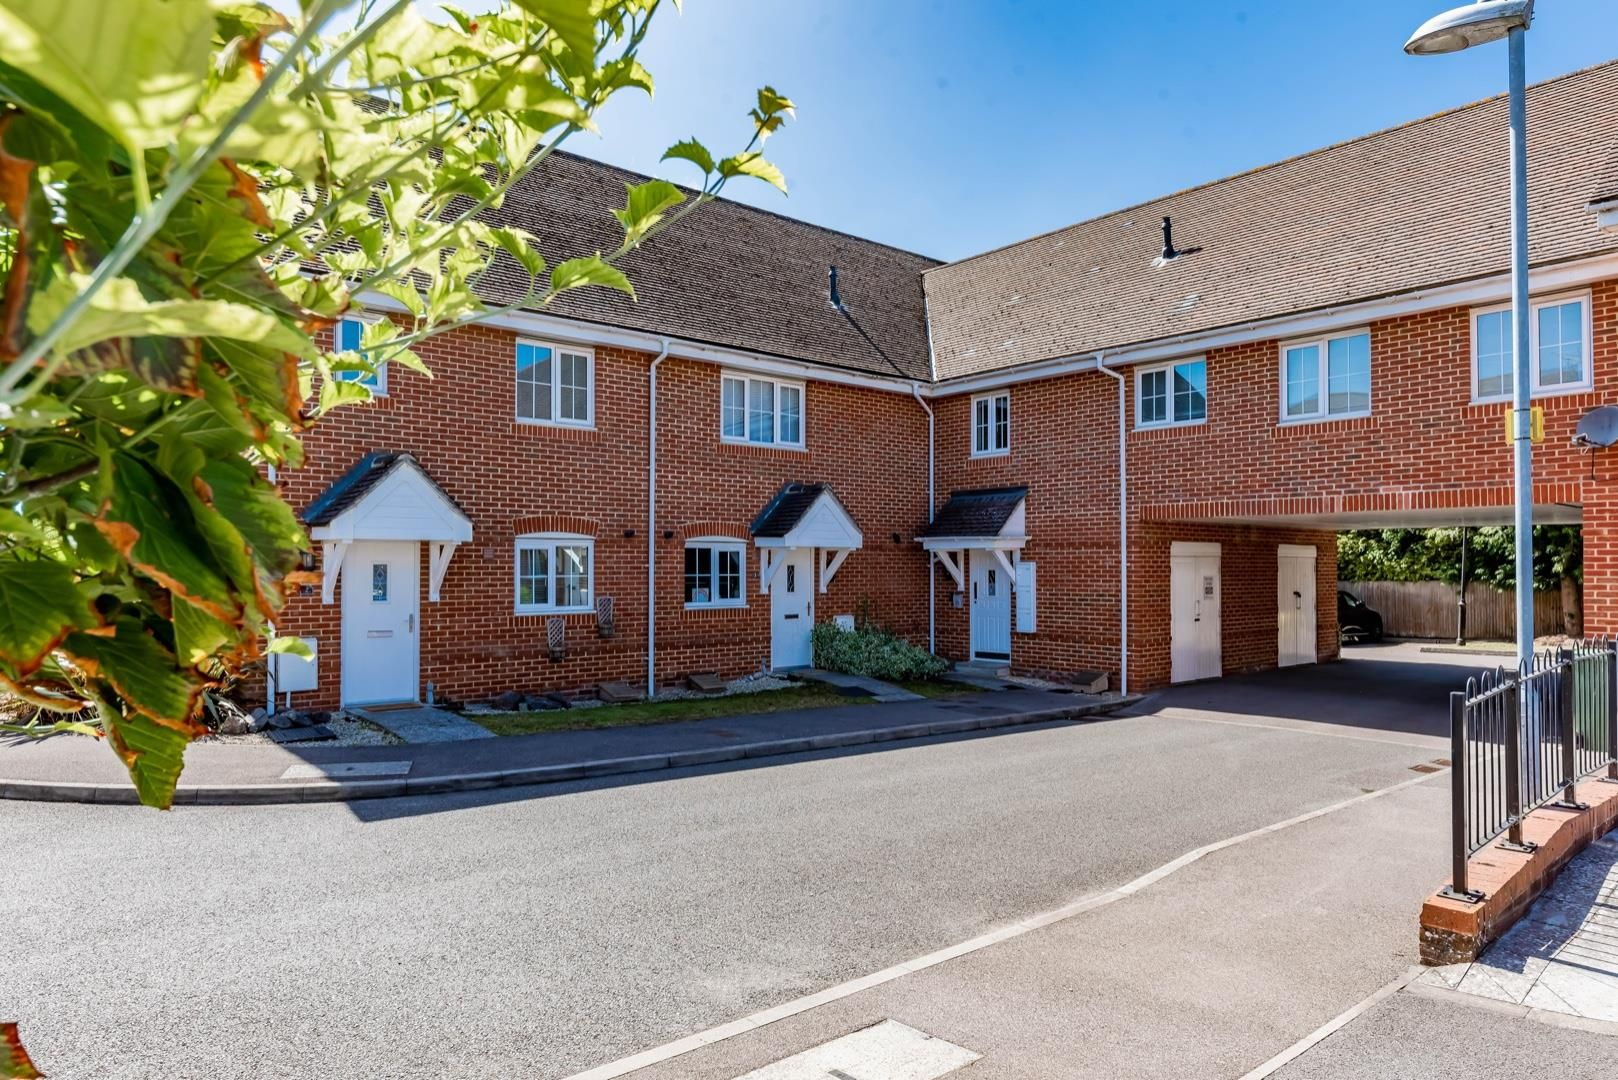 2 bed apartment for sale in College Town, GU47